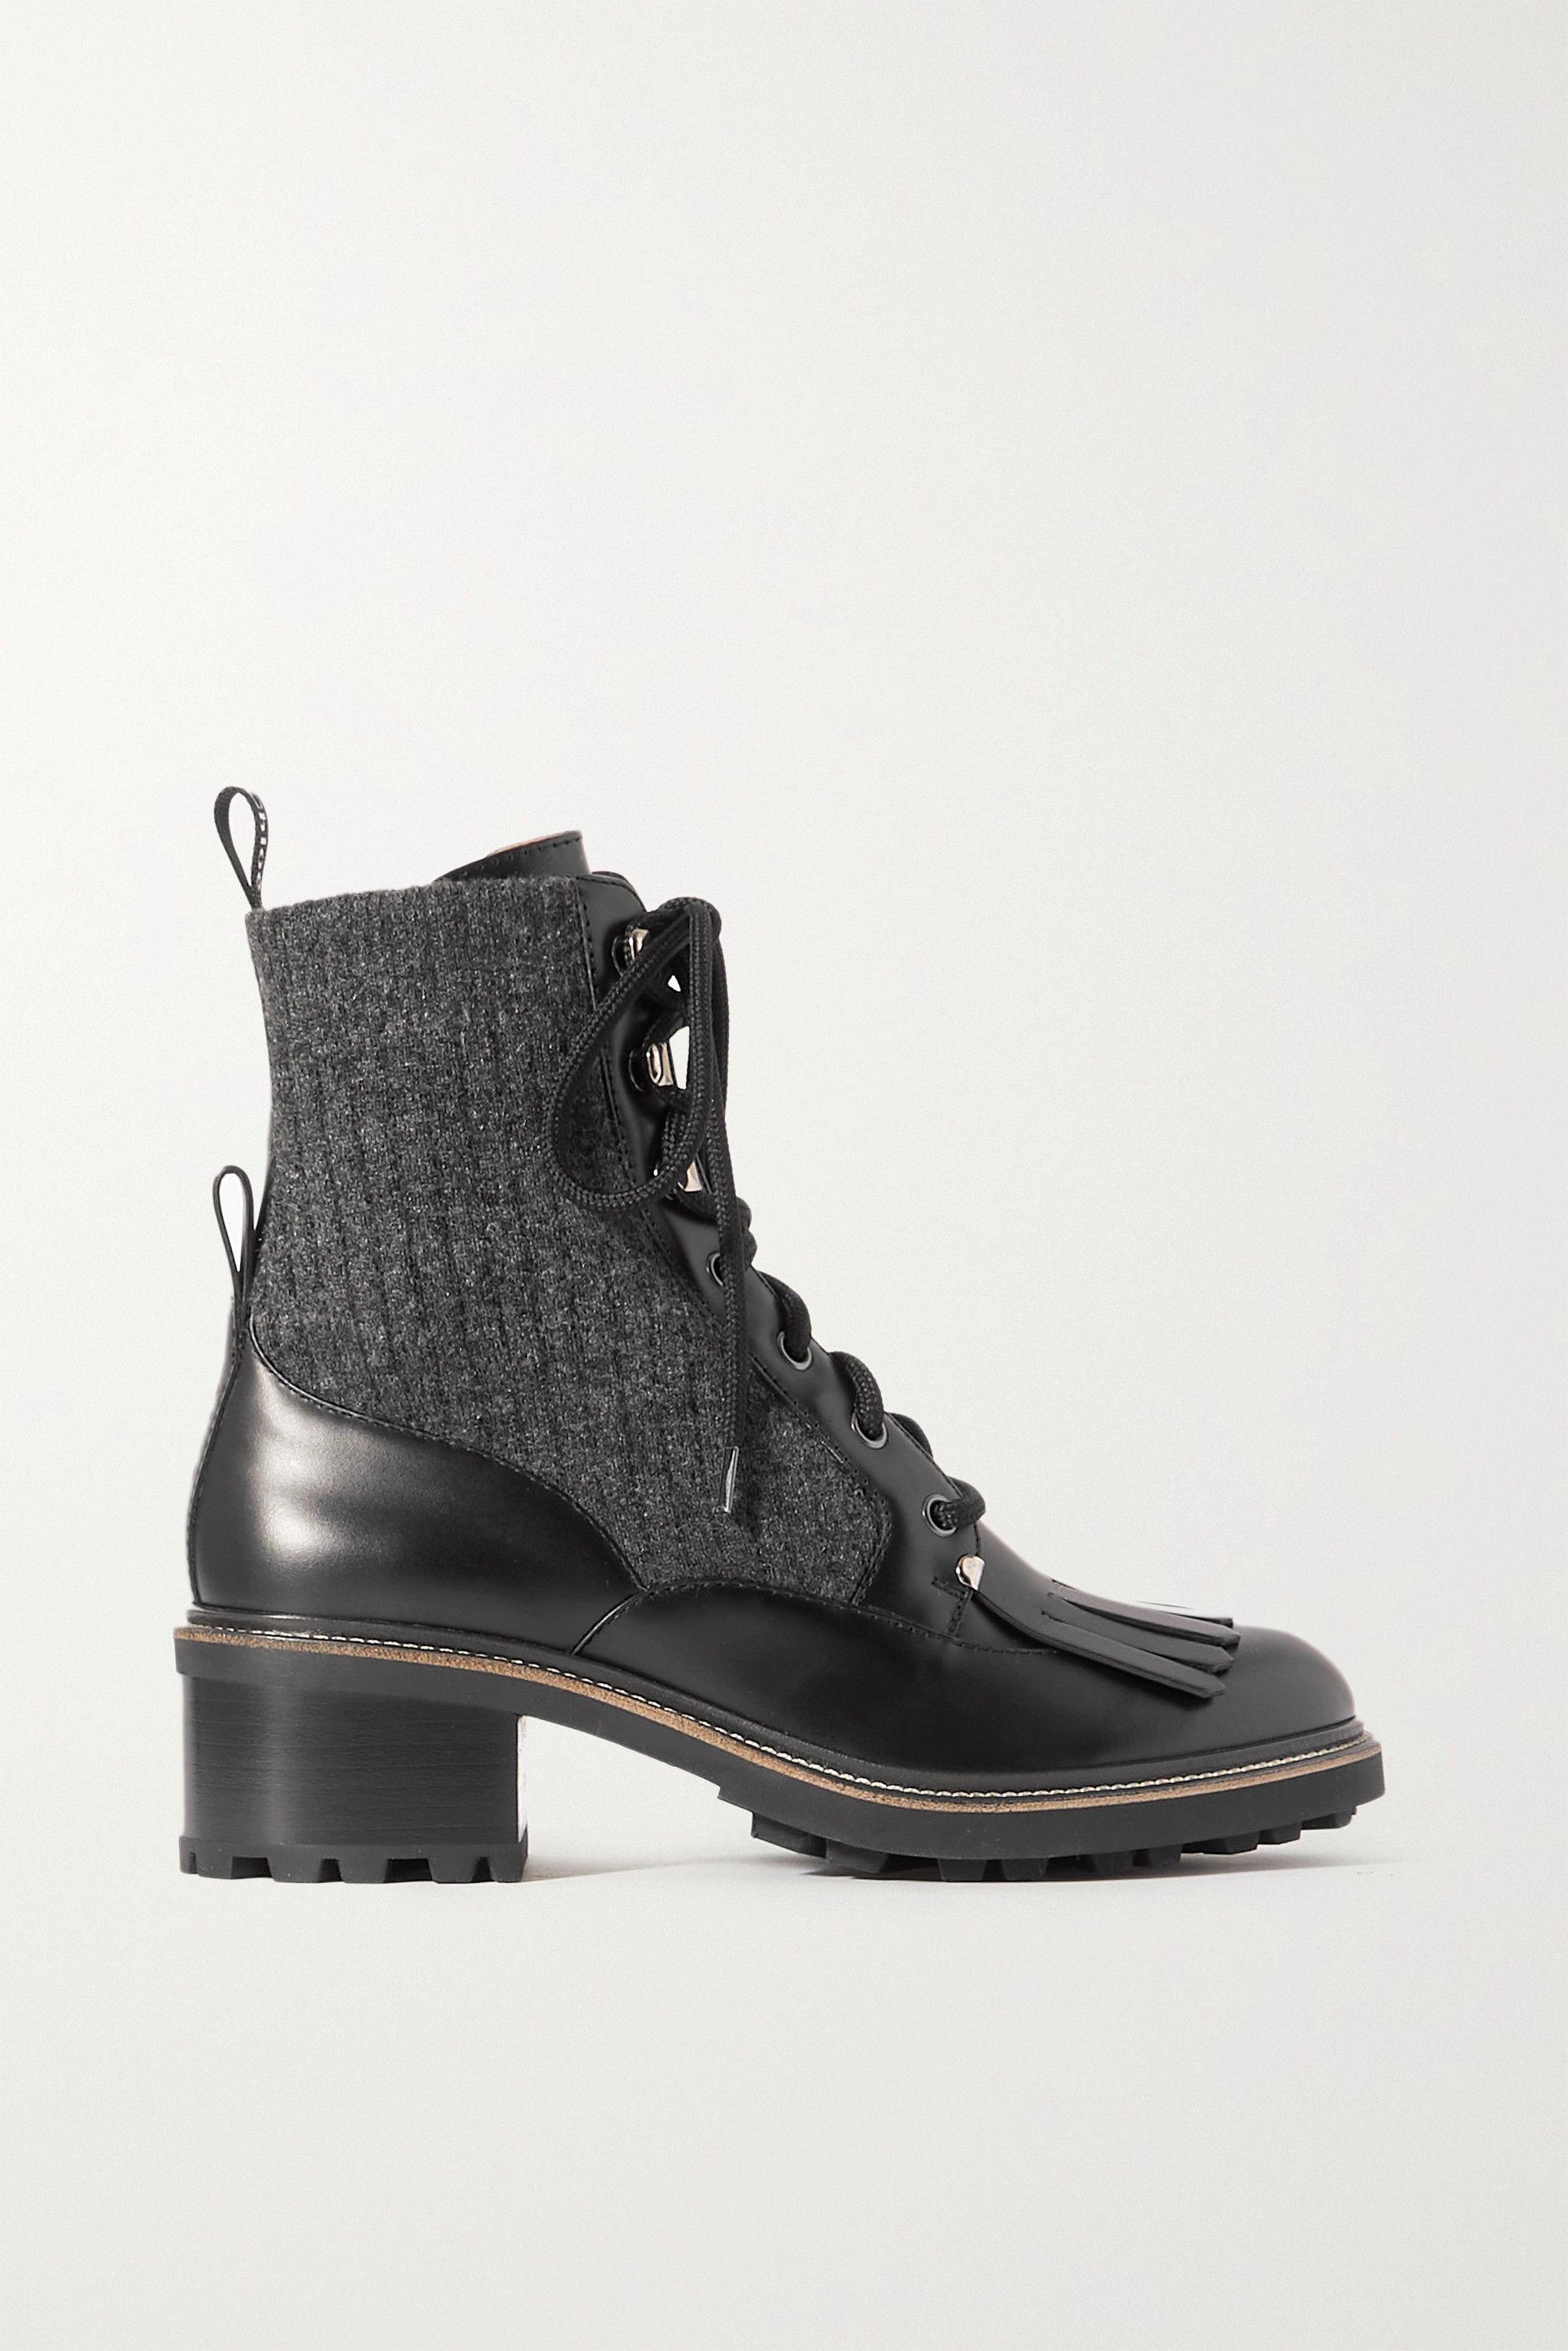 Chloé Franne tasseled leather and ribbed wool ankle boots